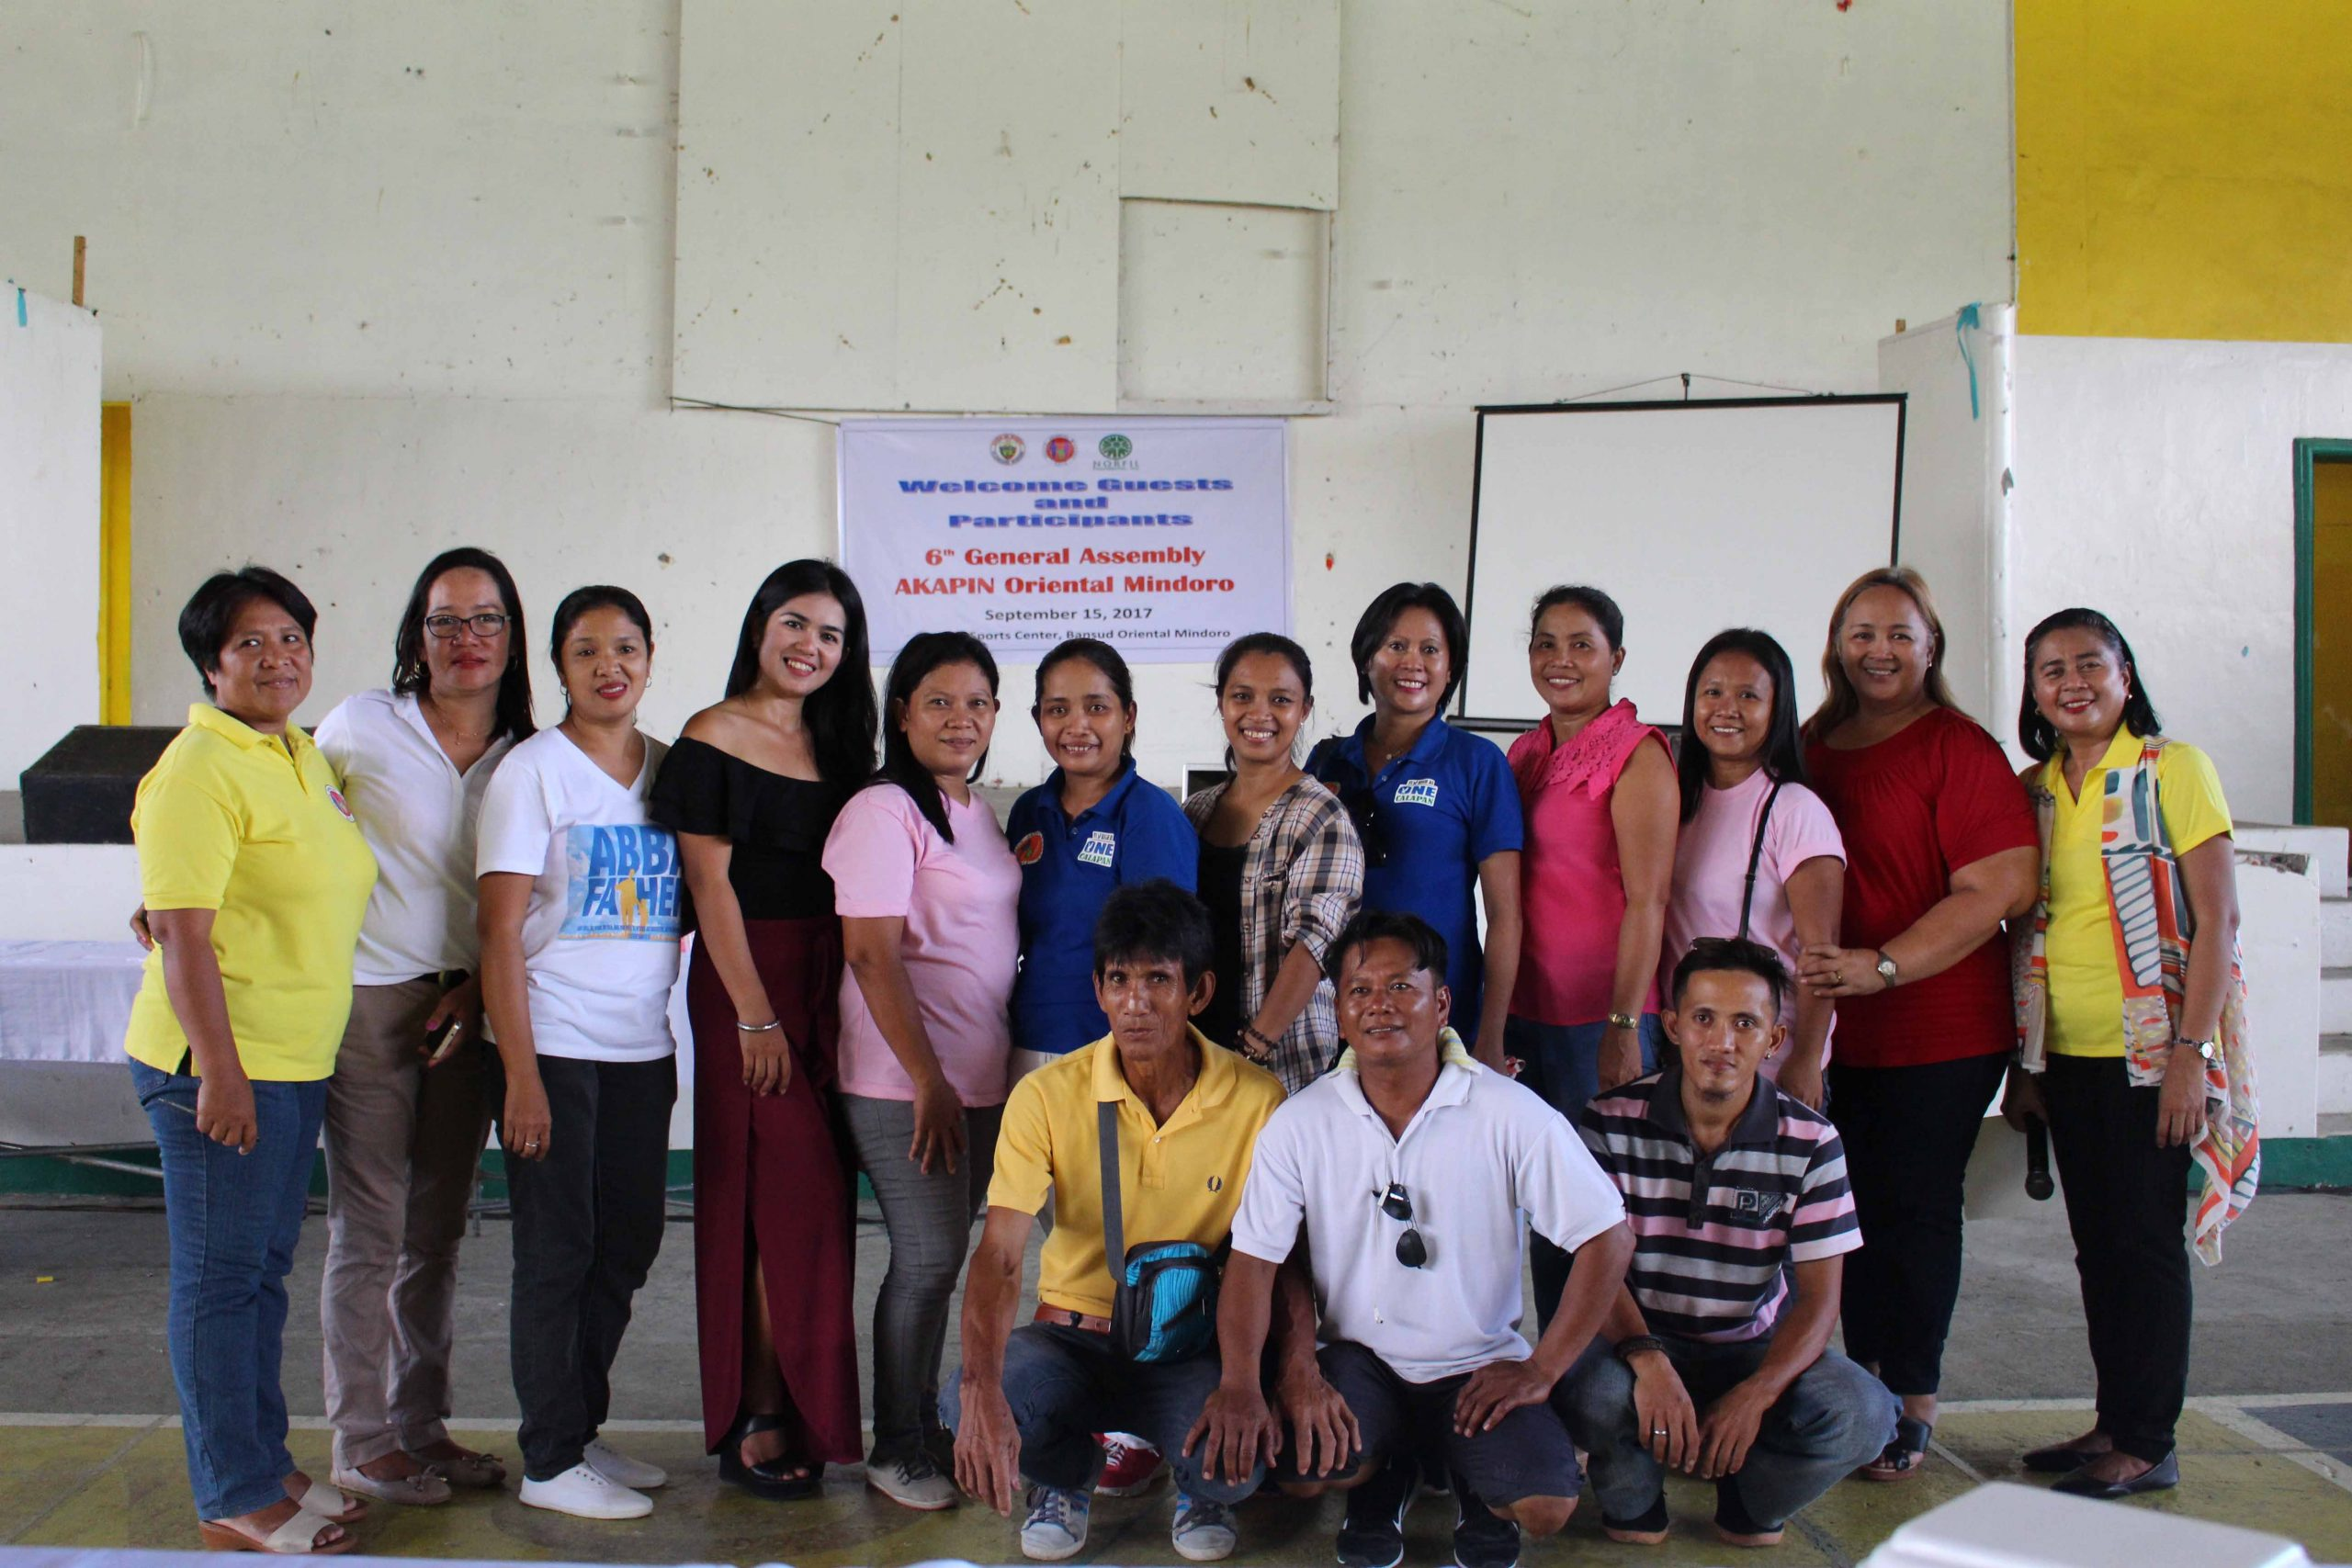 Group photo taken during the sixth general assembly of AKAPIN Oriental Mindoro